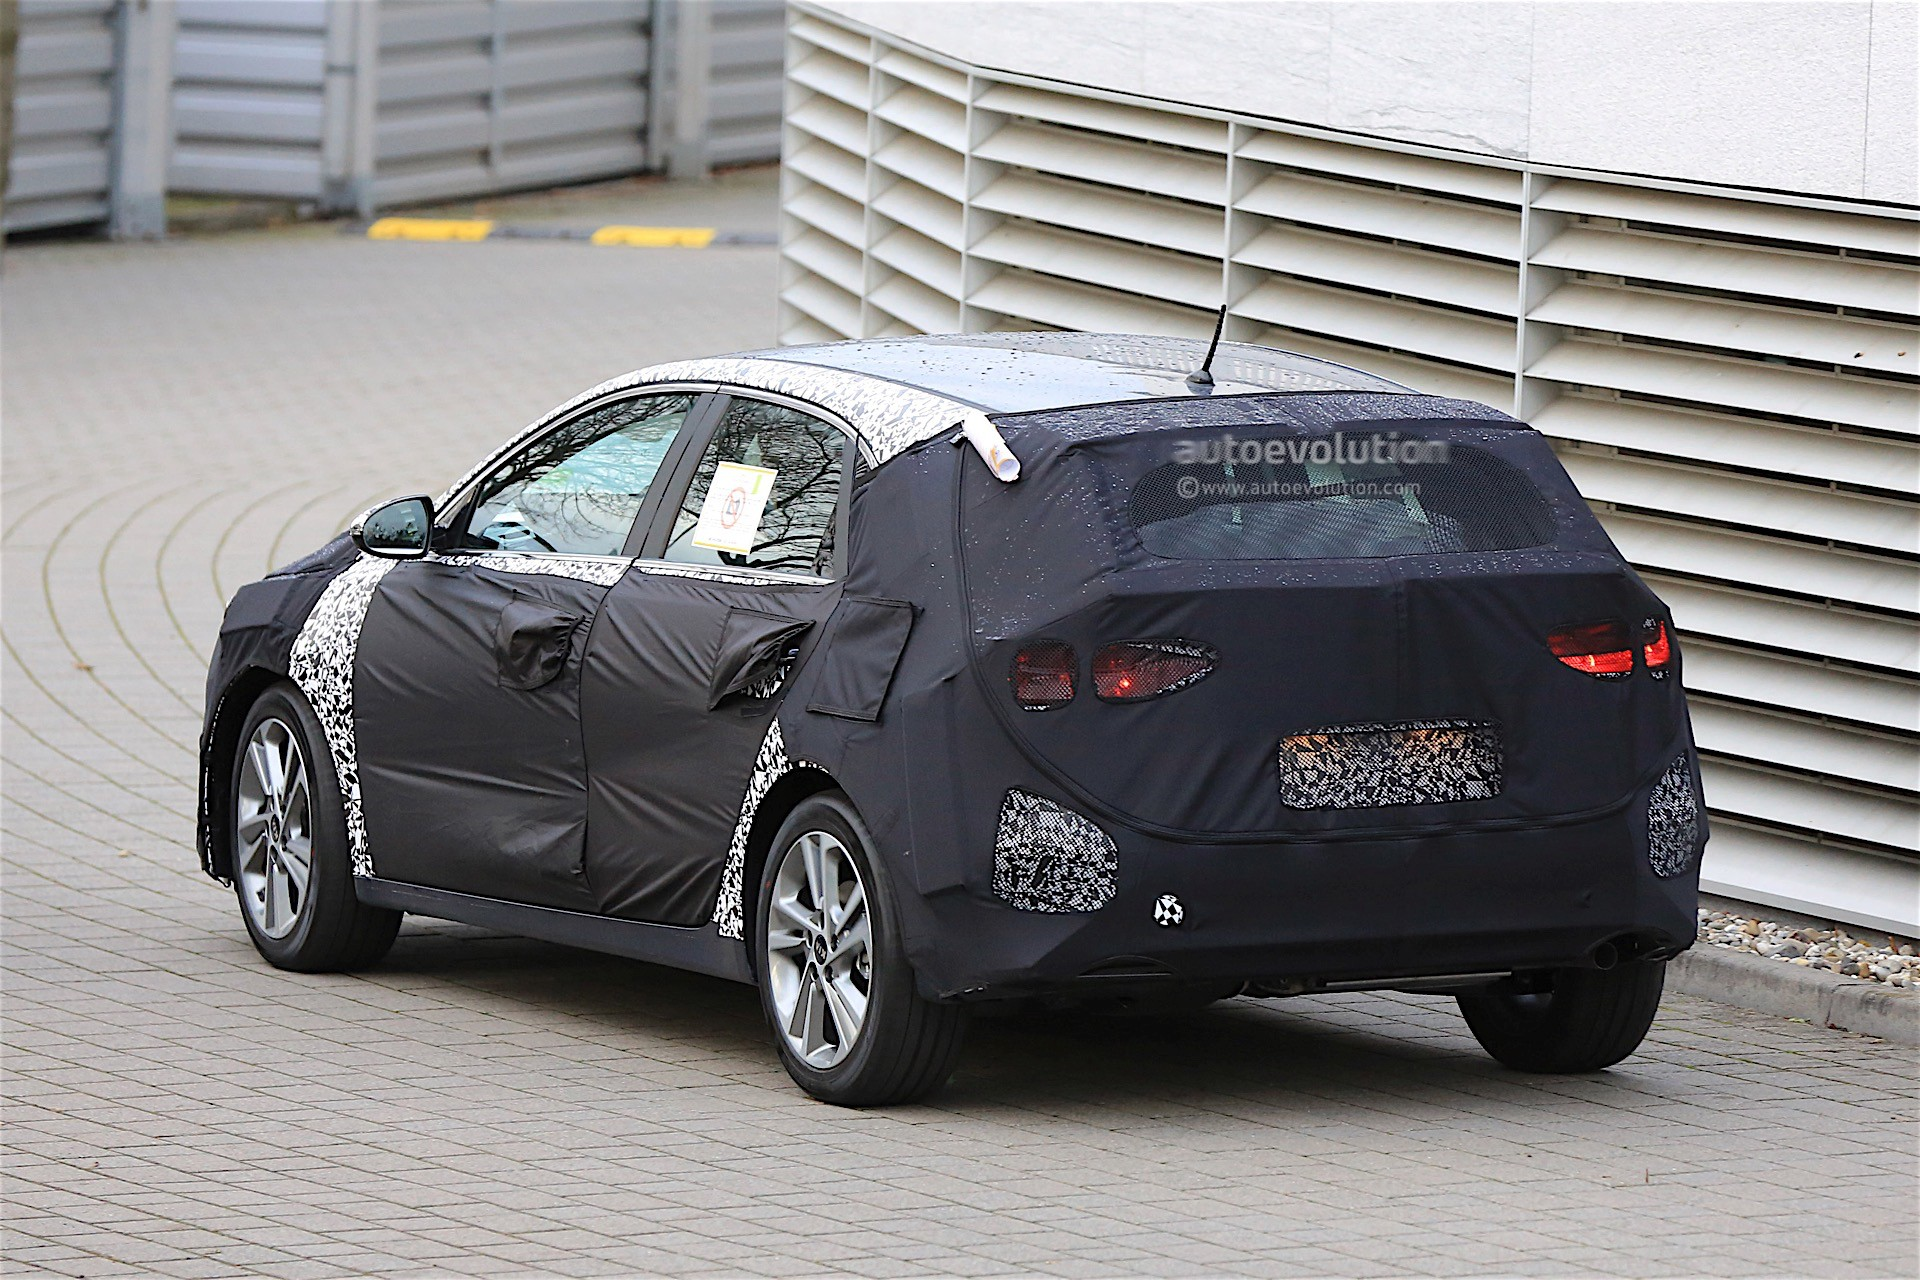 2018 Kia Cee D Caught On Video Next To New Hyundai I30 And Kia